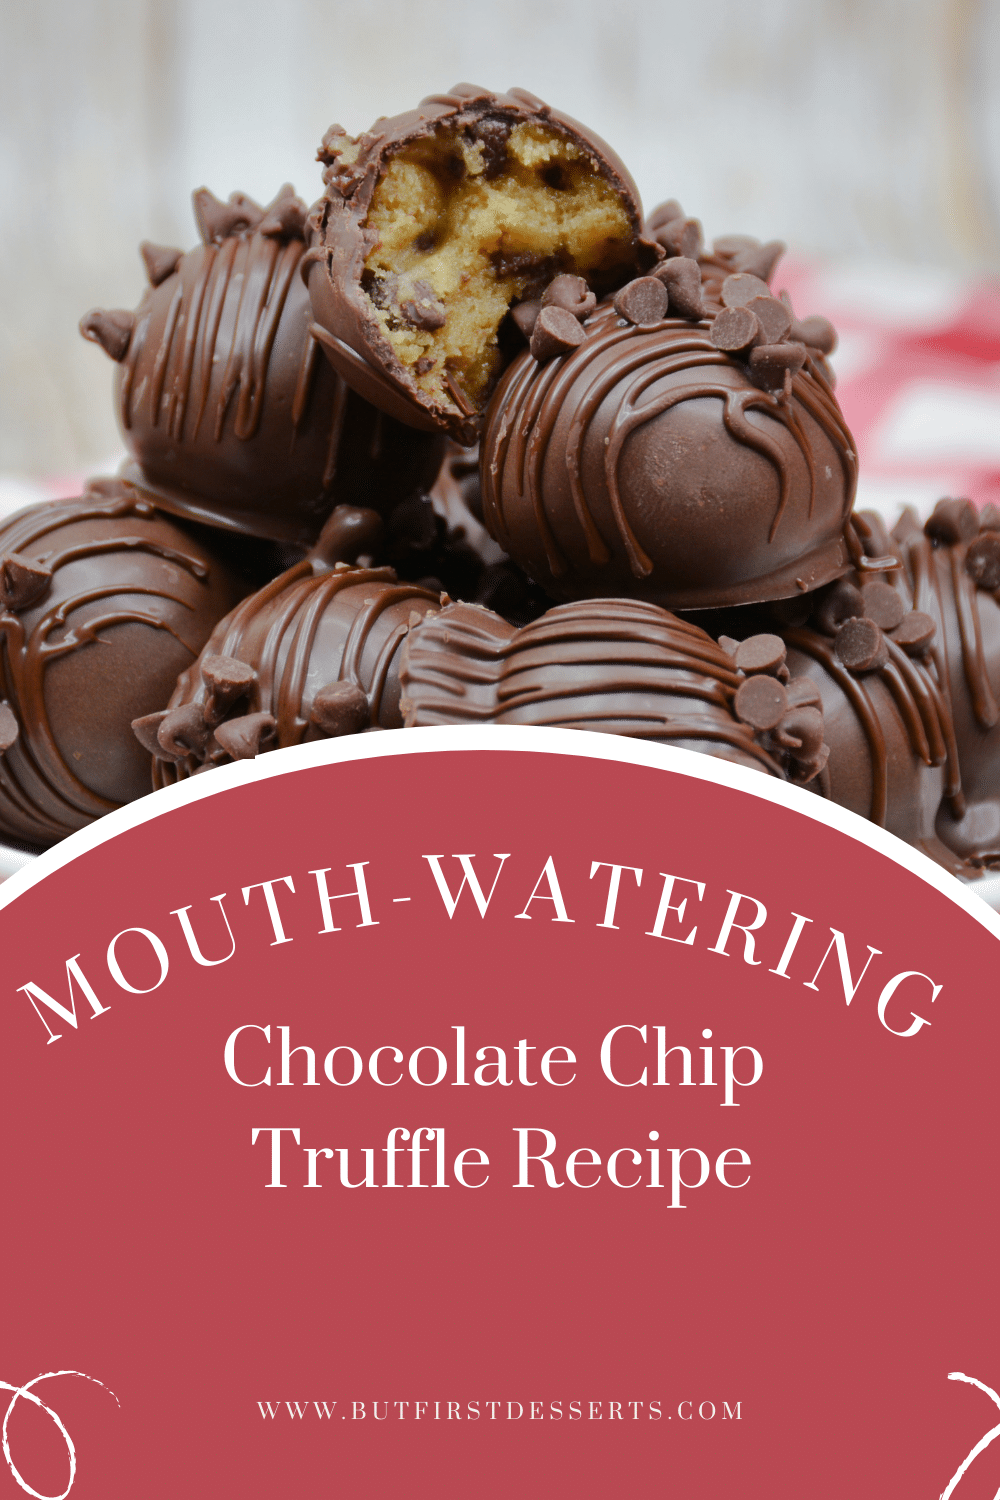 Mouth-Watering Chocolate Chip Truffle Recipe